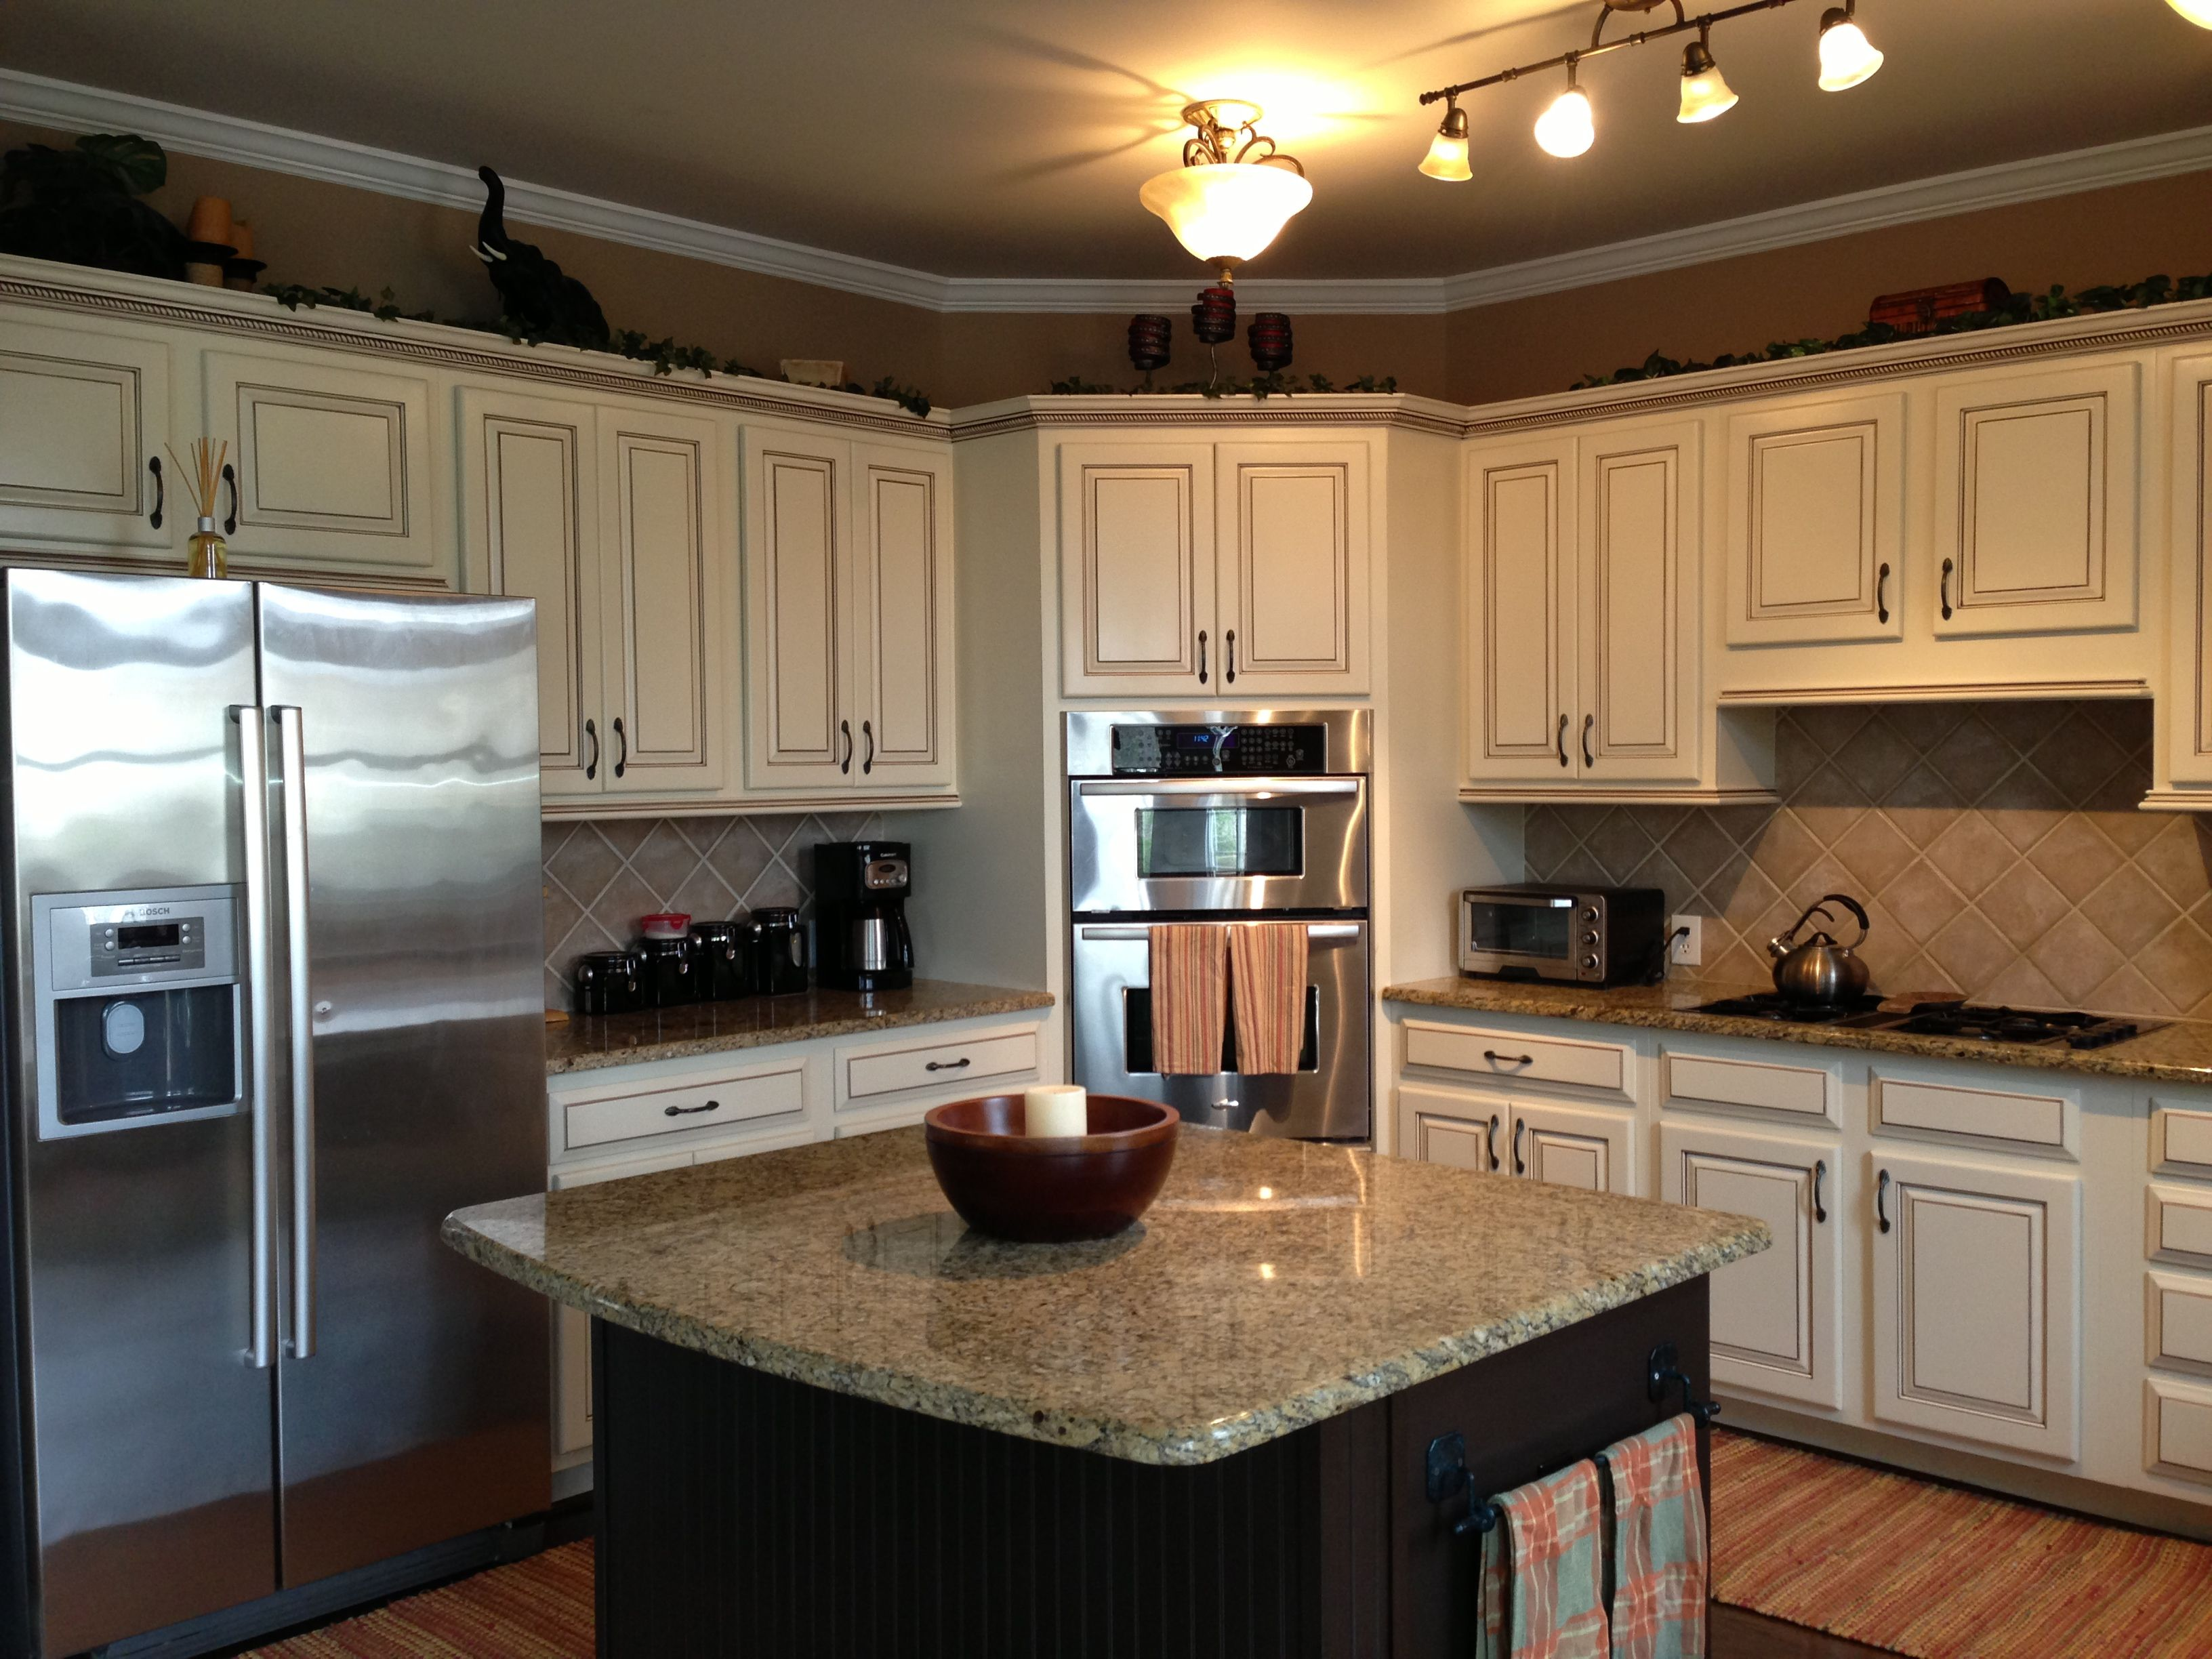 My Dream Kitchen At Last Painted Maple Cabinets Antique White Almond Added Light Rail At The Bot Kitchen Decor Walmart Kitchen Decor Brown Kitchen Cabinets